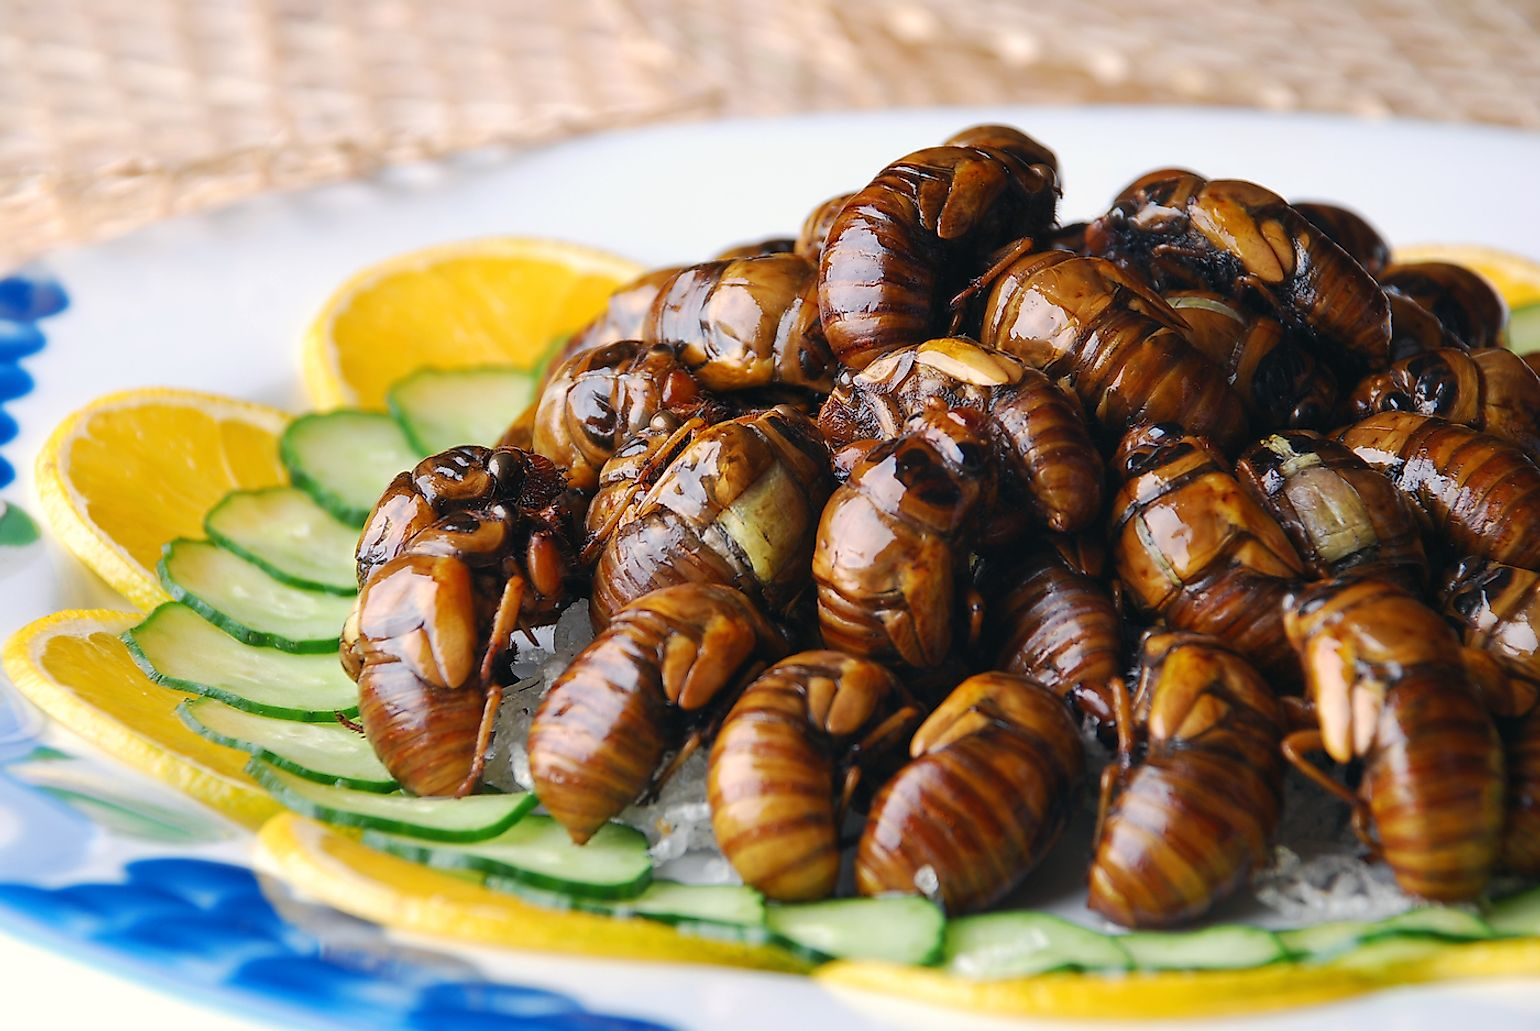 Friend cicadas in China. Image credit: Wxin/Shutterstock.com